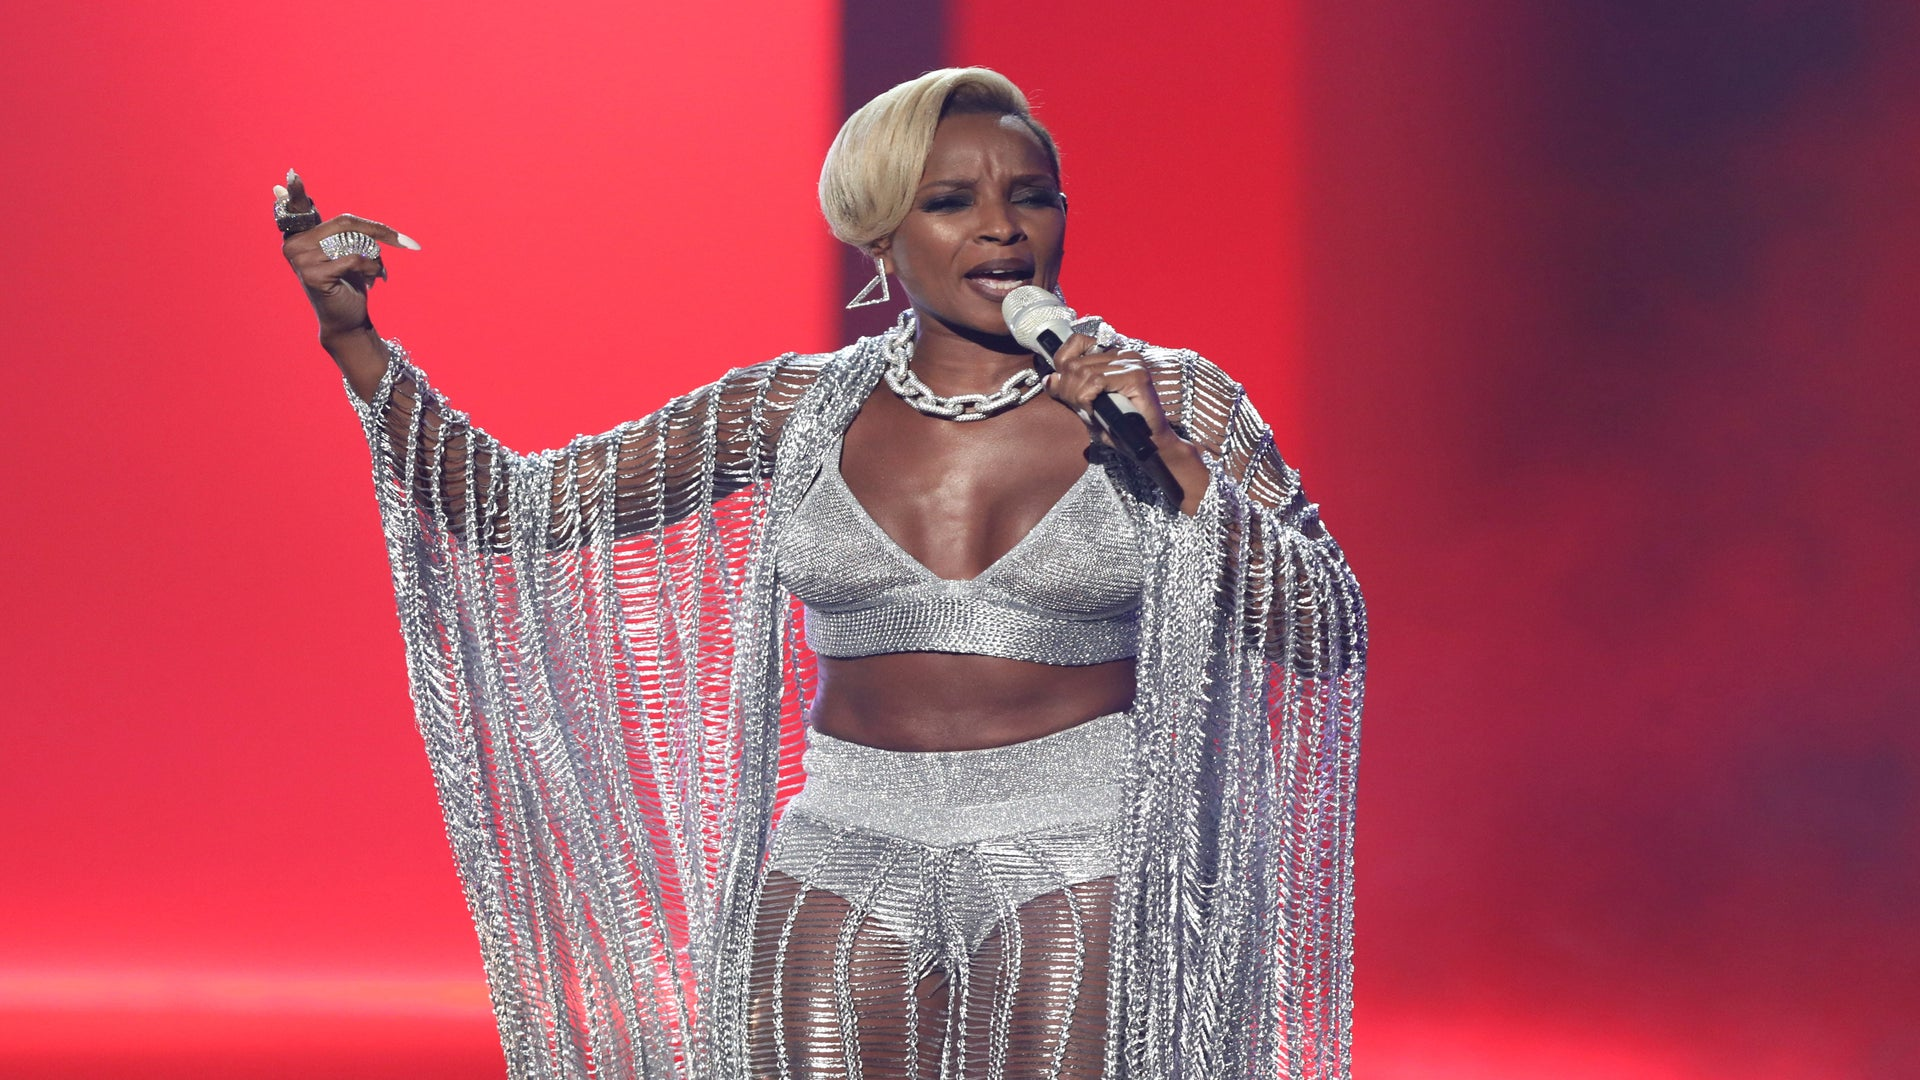 2017 ESSENCE Fest Performer Mary J. Blige Shuts BET Awards Stage Down in Killer Chain-Link Silver Ensemble